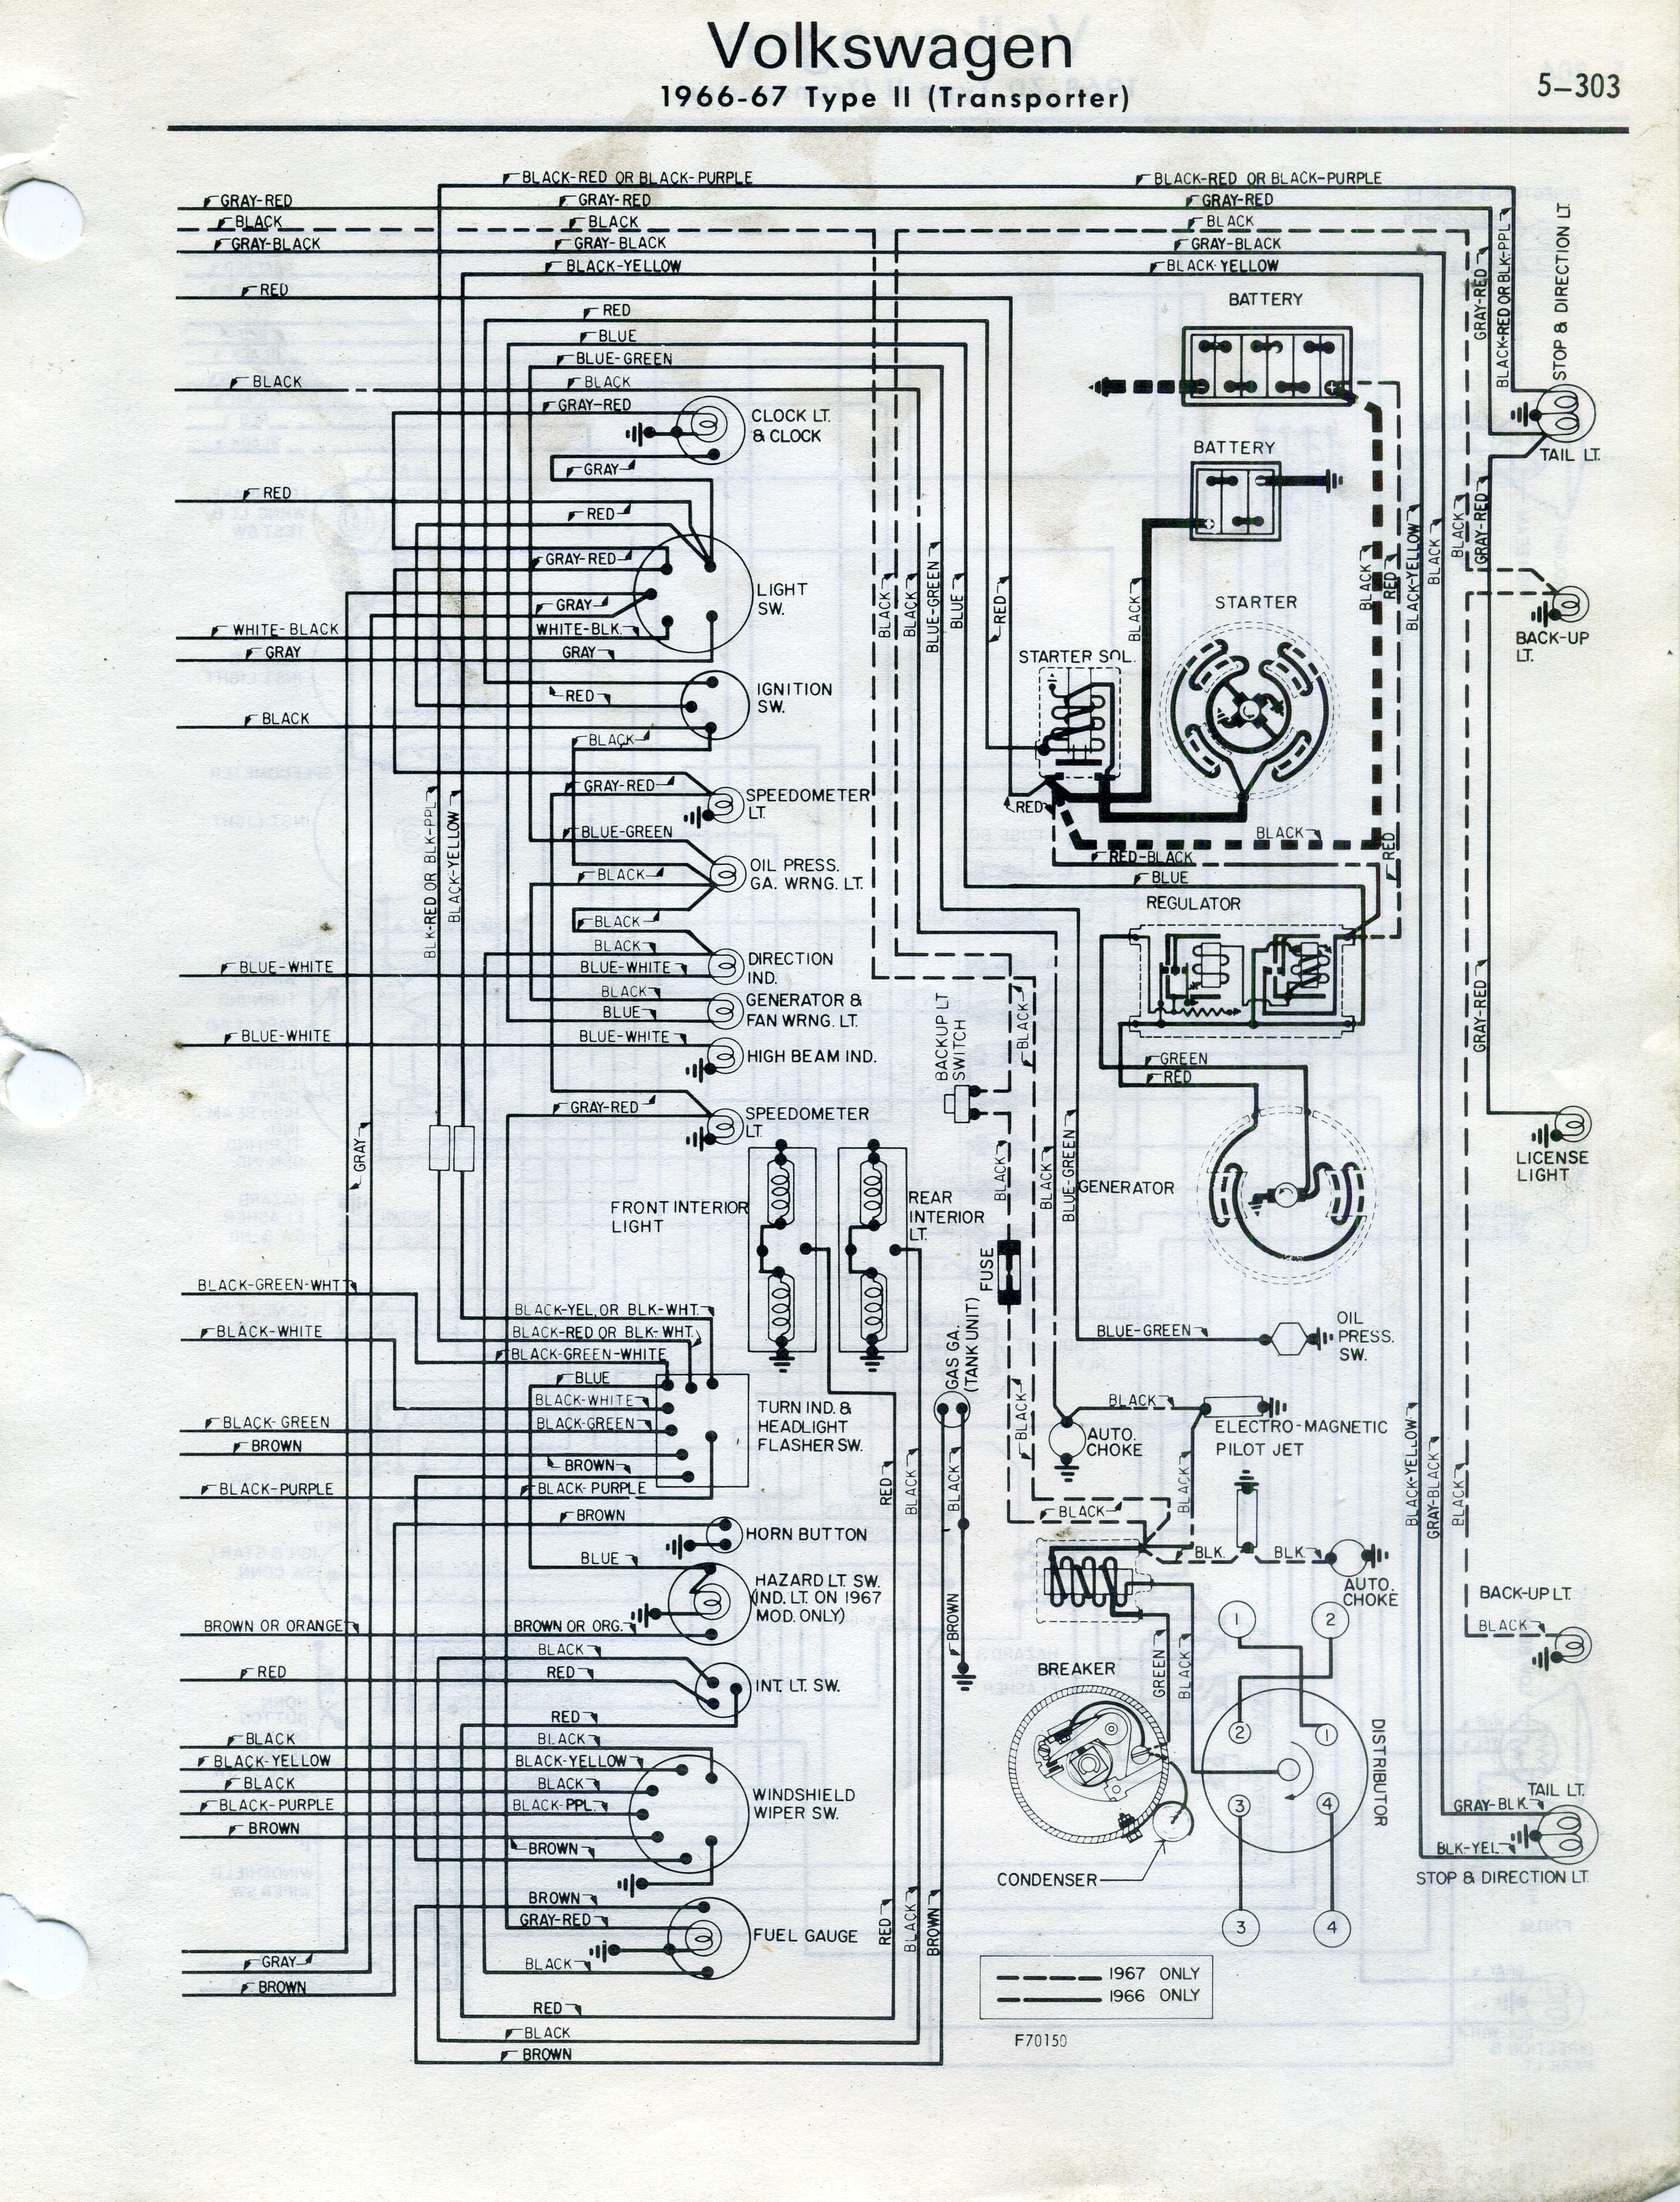 Vw T4 Wiring Loom Diagram Library Thesambacom Gallery Trike Diagrams 66 Transporter